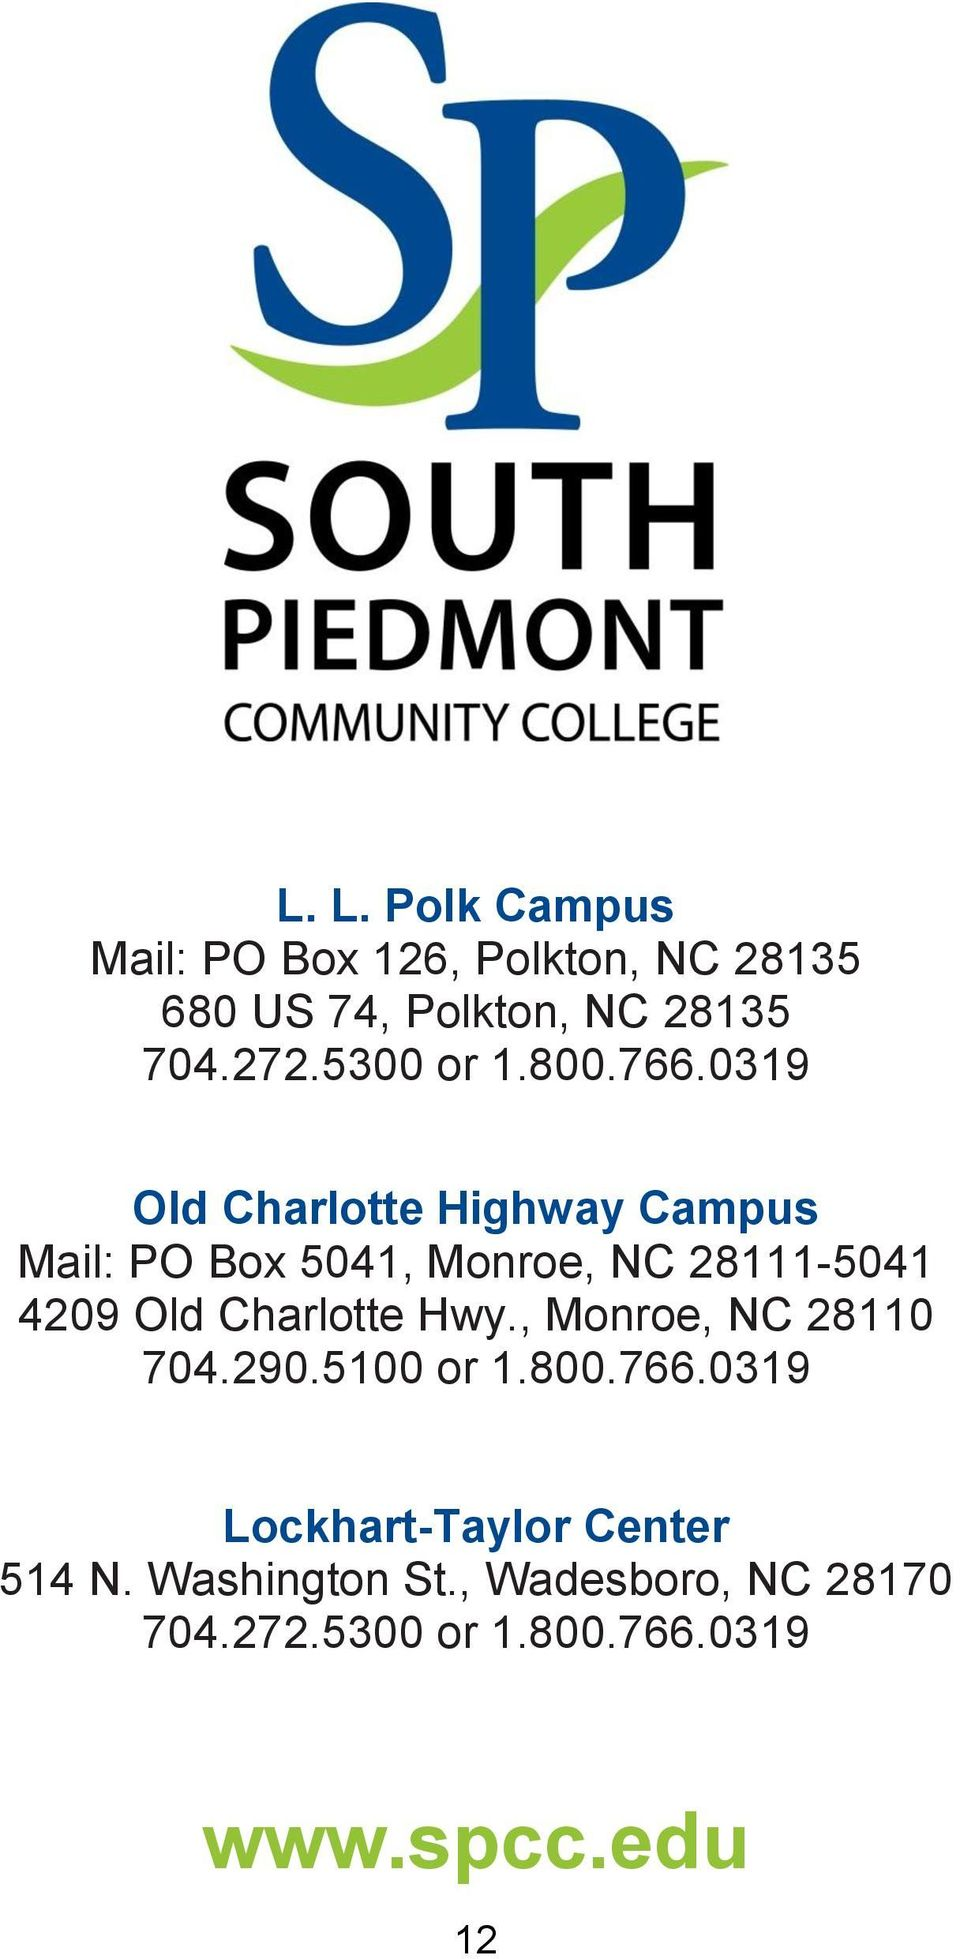 0319 Old Charlotte Highway Campus Mail: PO Box 5041, Monroe, NC 28111-5041 4209 Old